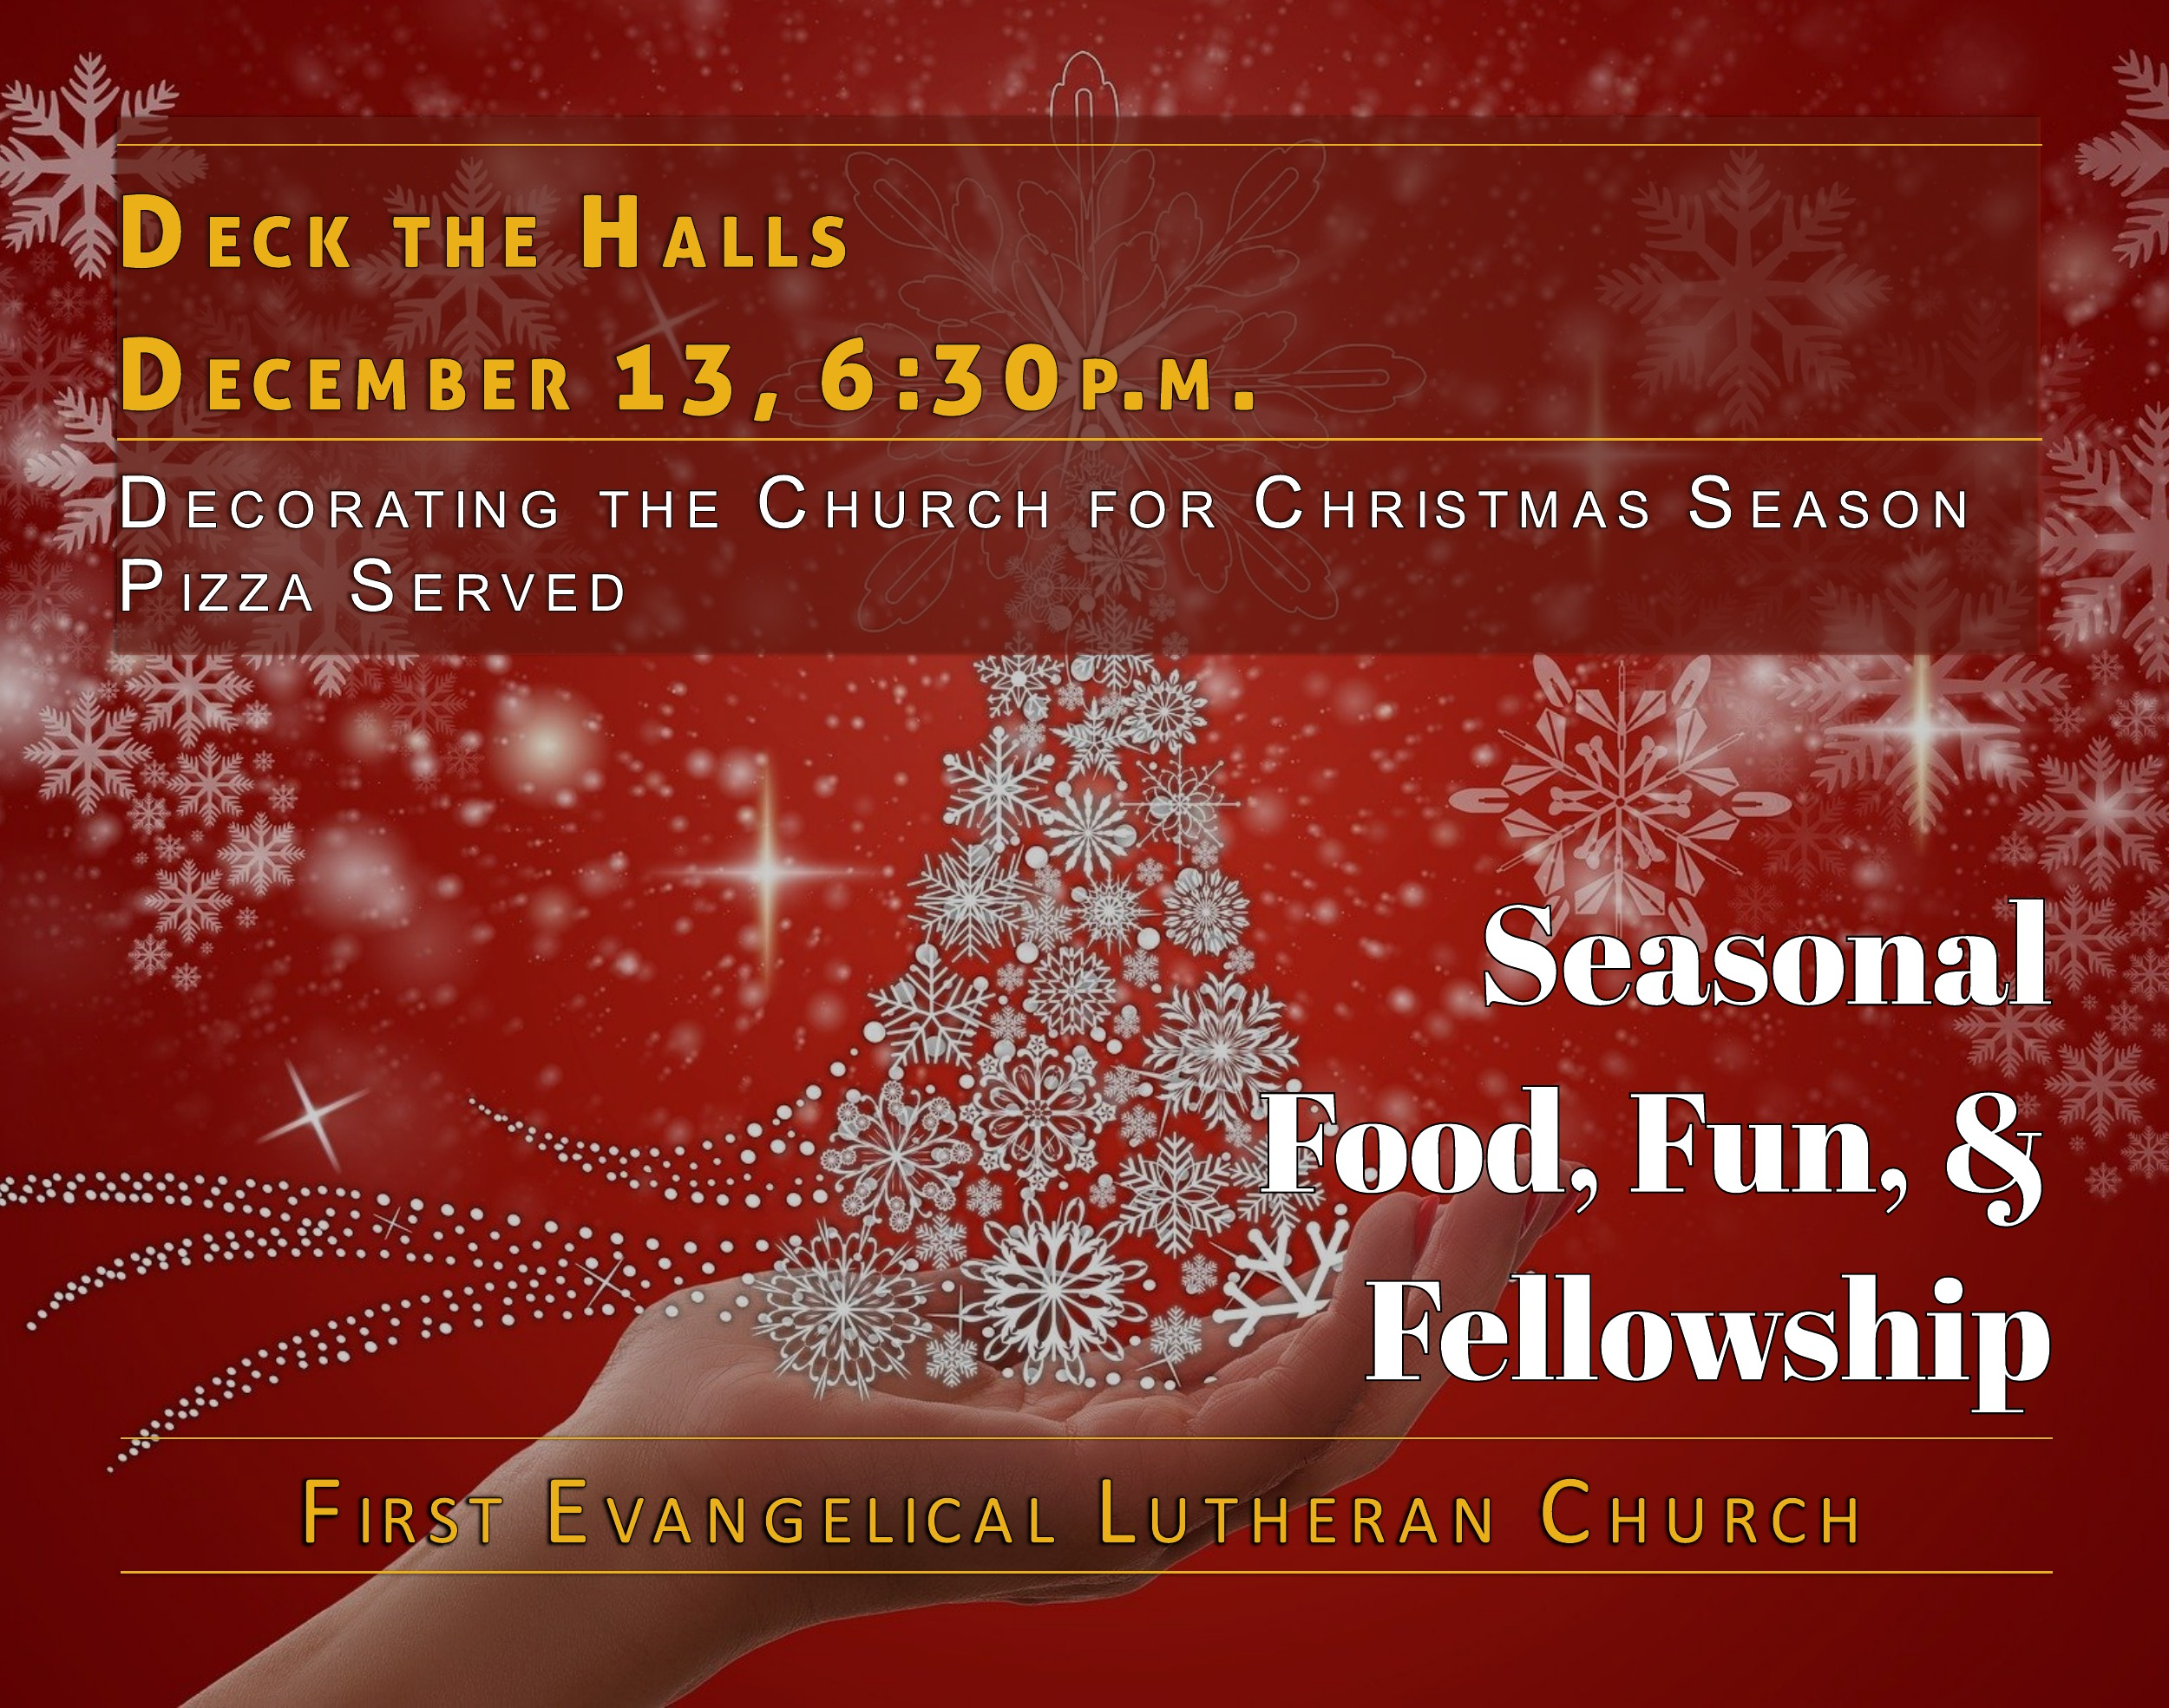 12/13/2019 - Decorating the Church for Christmas Season, 6:30 p.m.  Pizza served